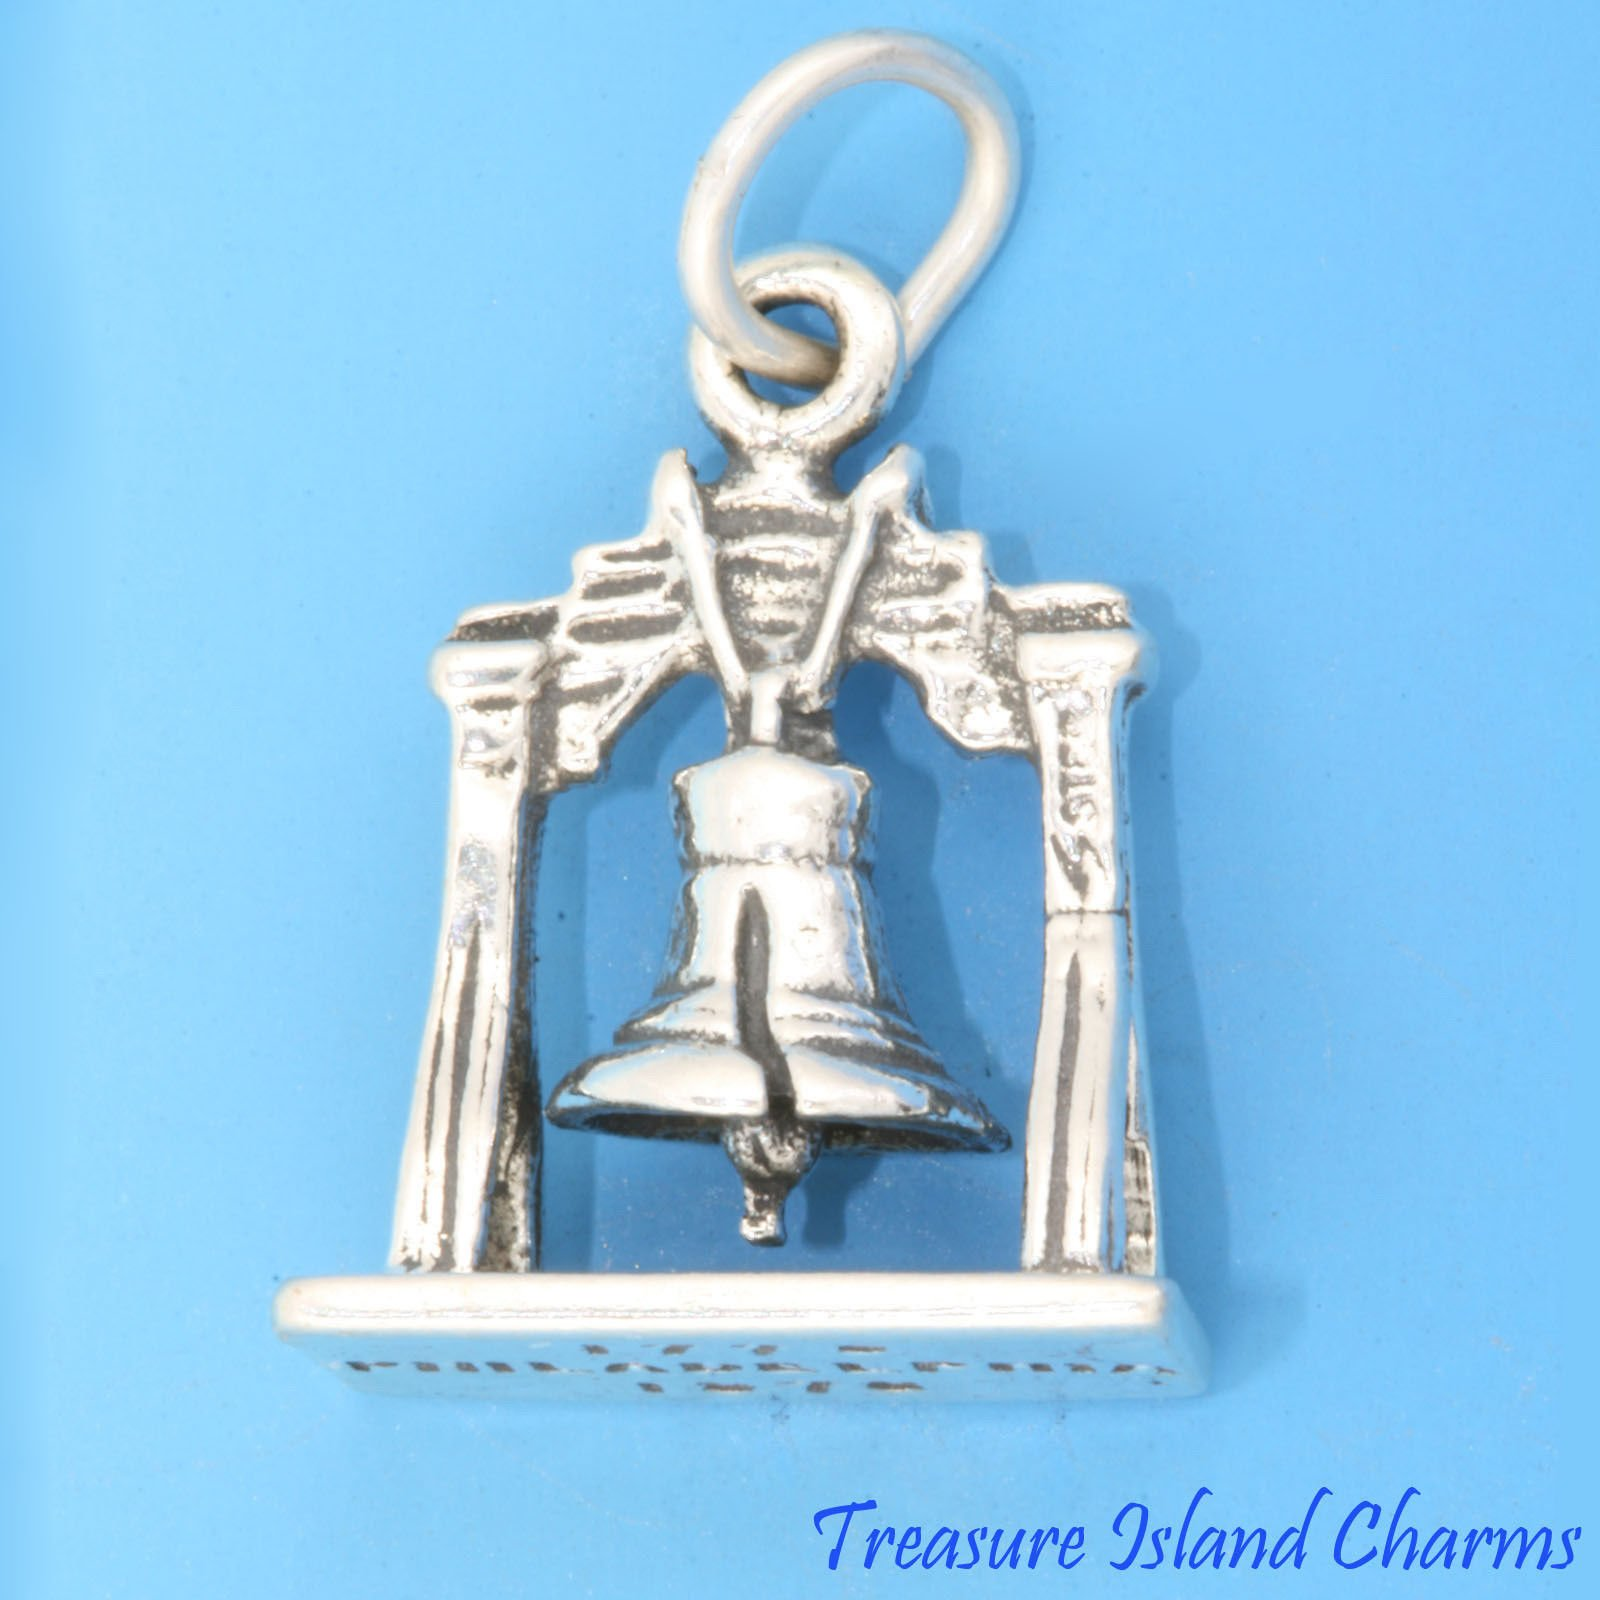 LIBERTY BELL PHILADELPHIA PENNSYLVANIA 3D .925 Solid Sterling Silver Charm Jewelry Making Supply Pendant Bracelet DIY Crafting by Wholesale Charms